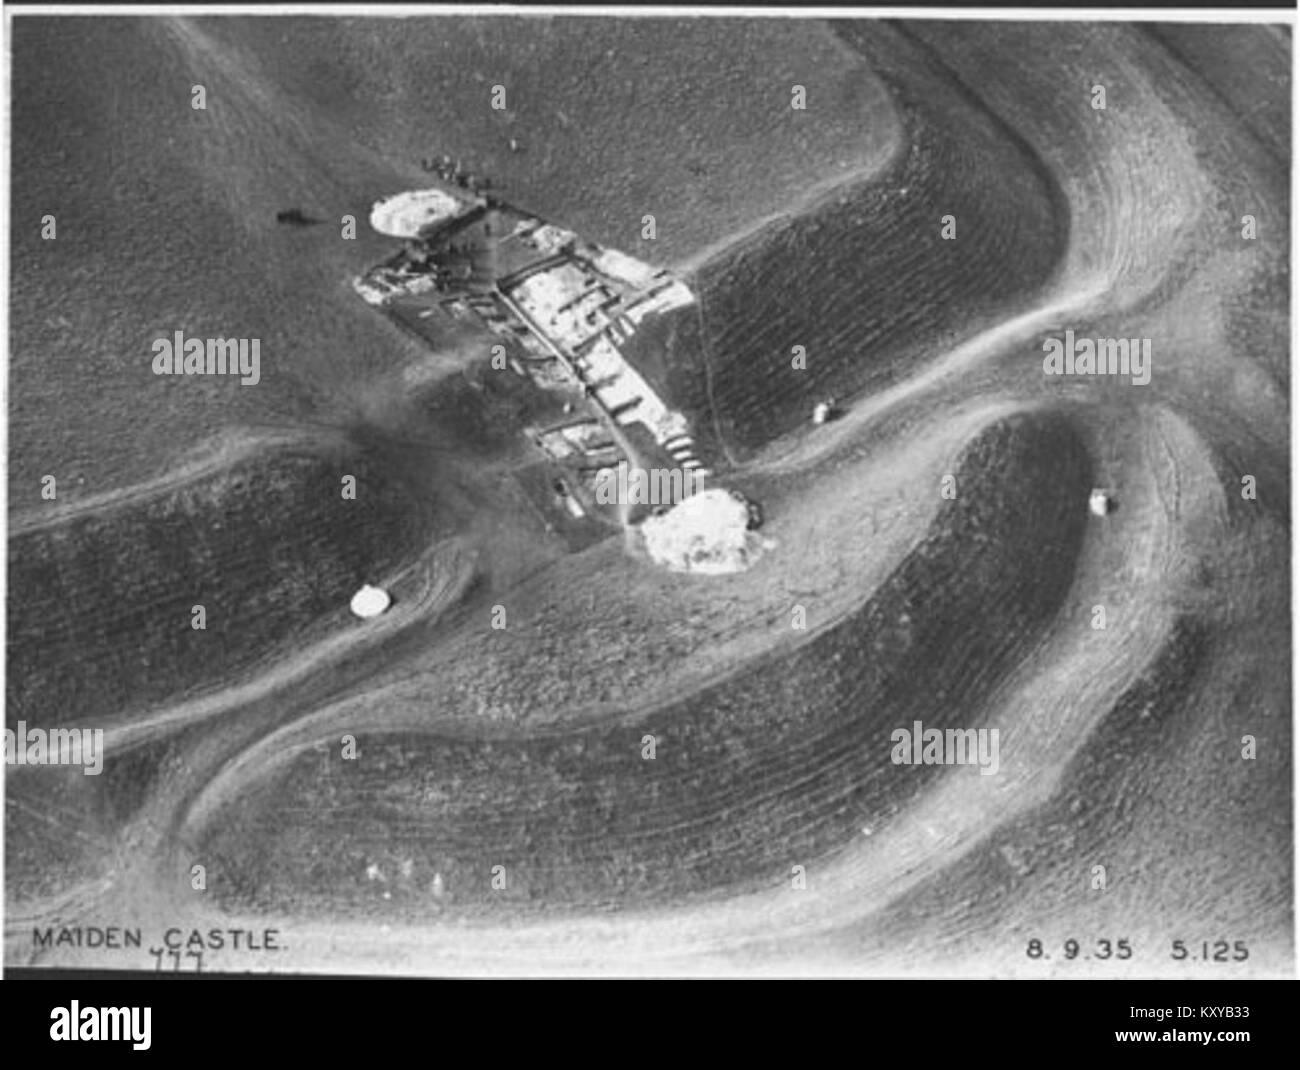 Excavation of Maiden Castle's east entrance, 1935 Stock Photo